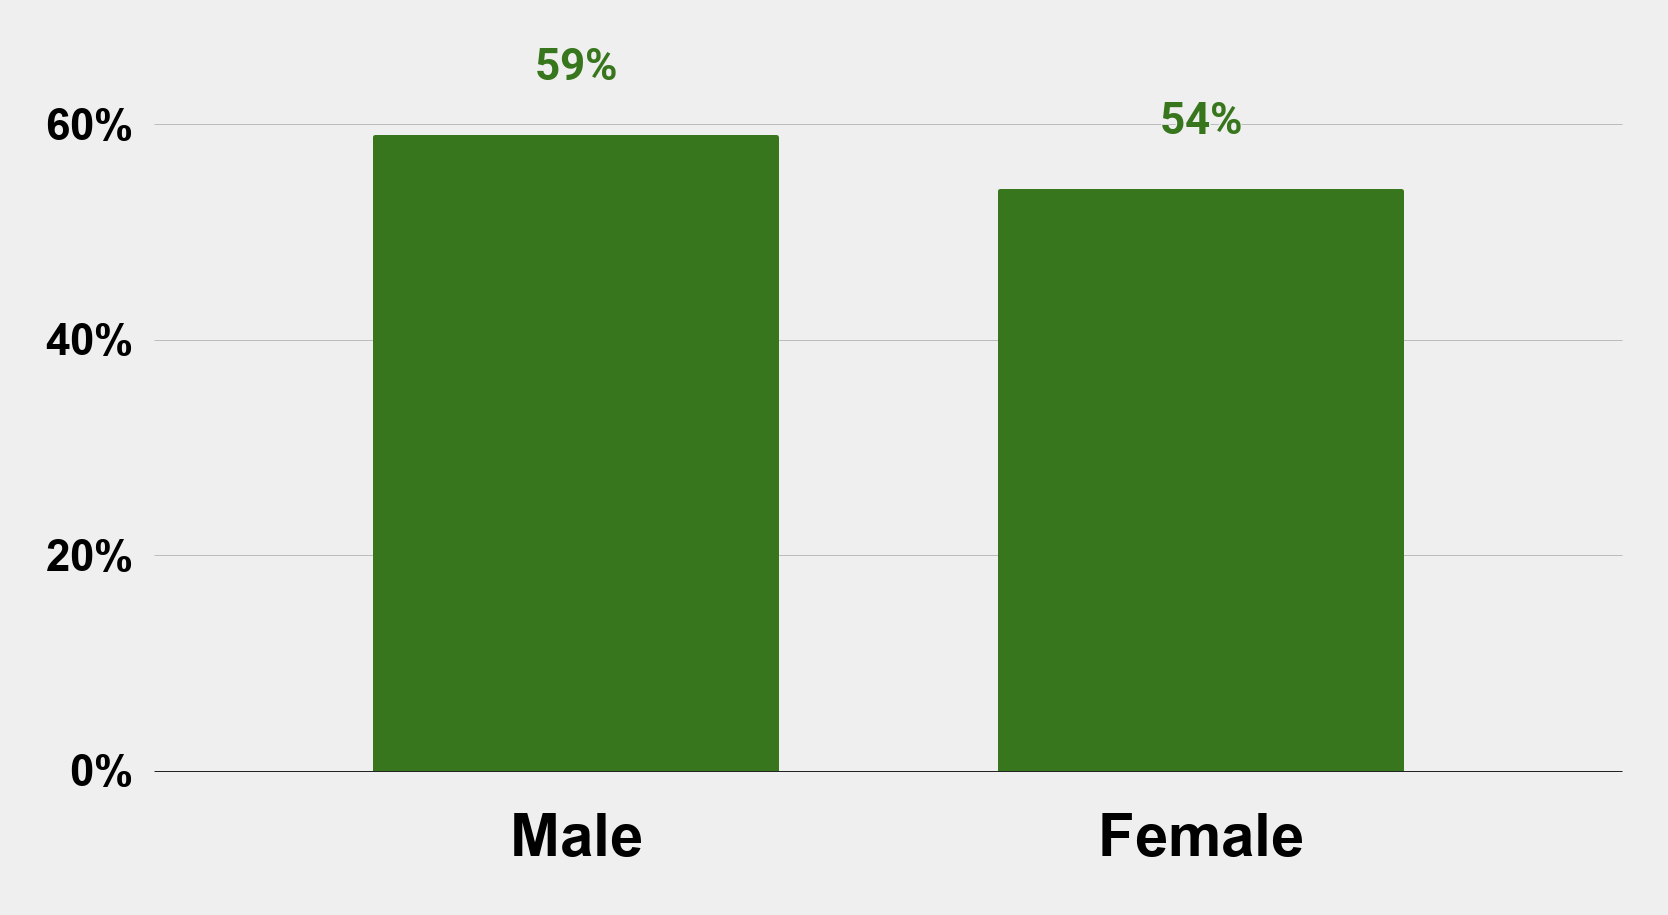 Persons who have been involved romantically with a coworker in the past United States (2018)